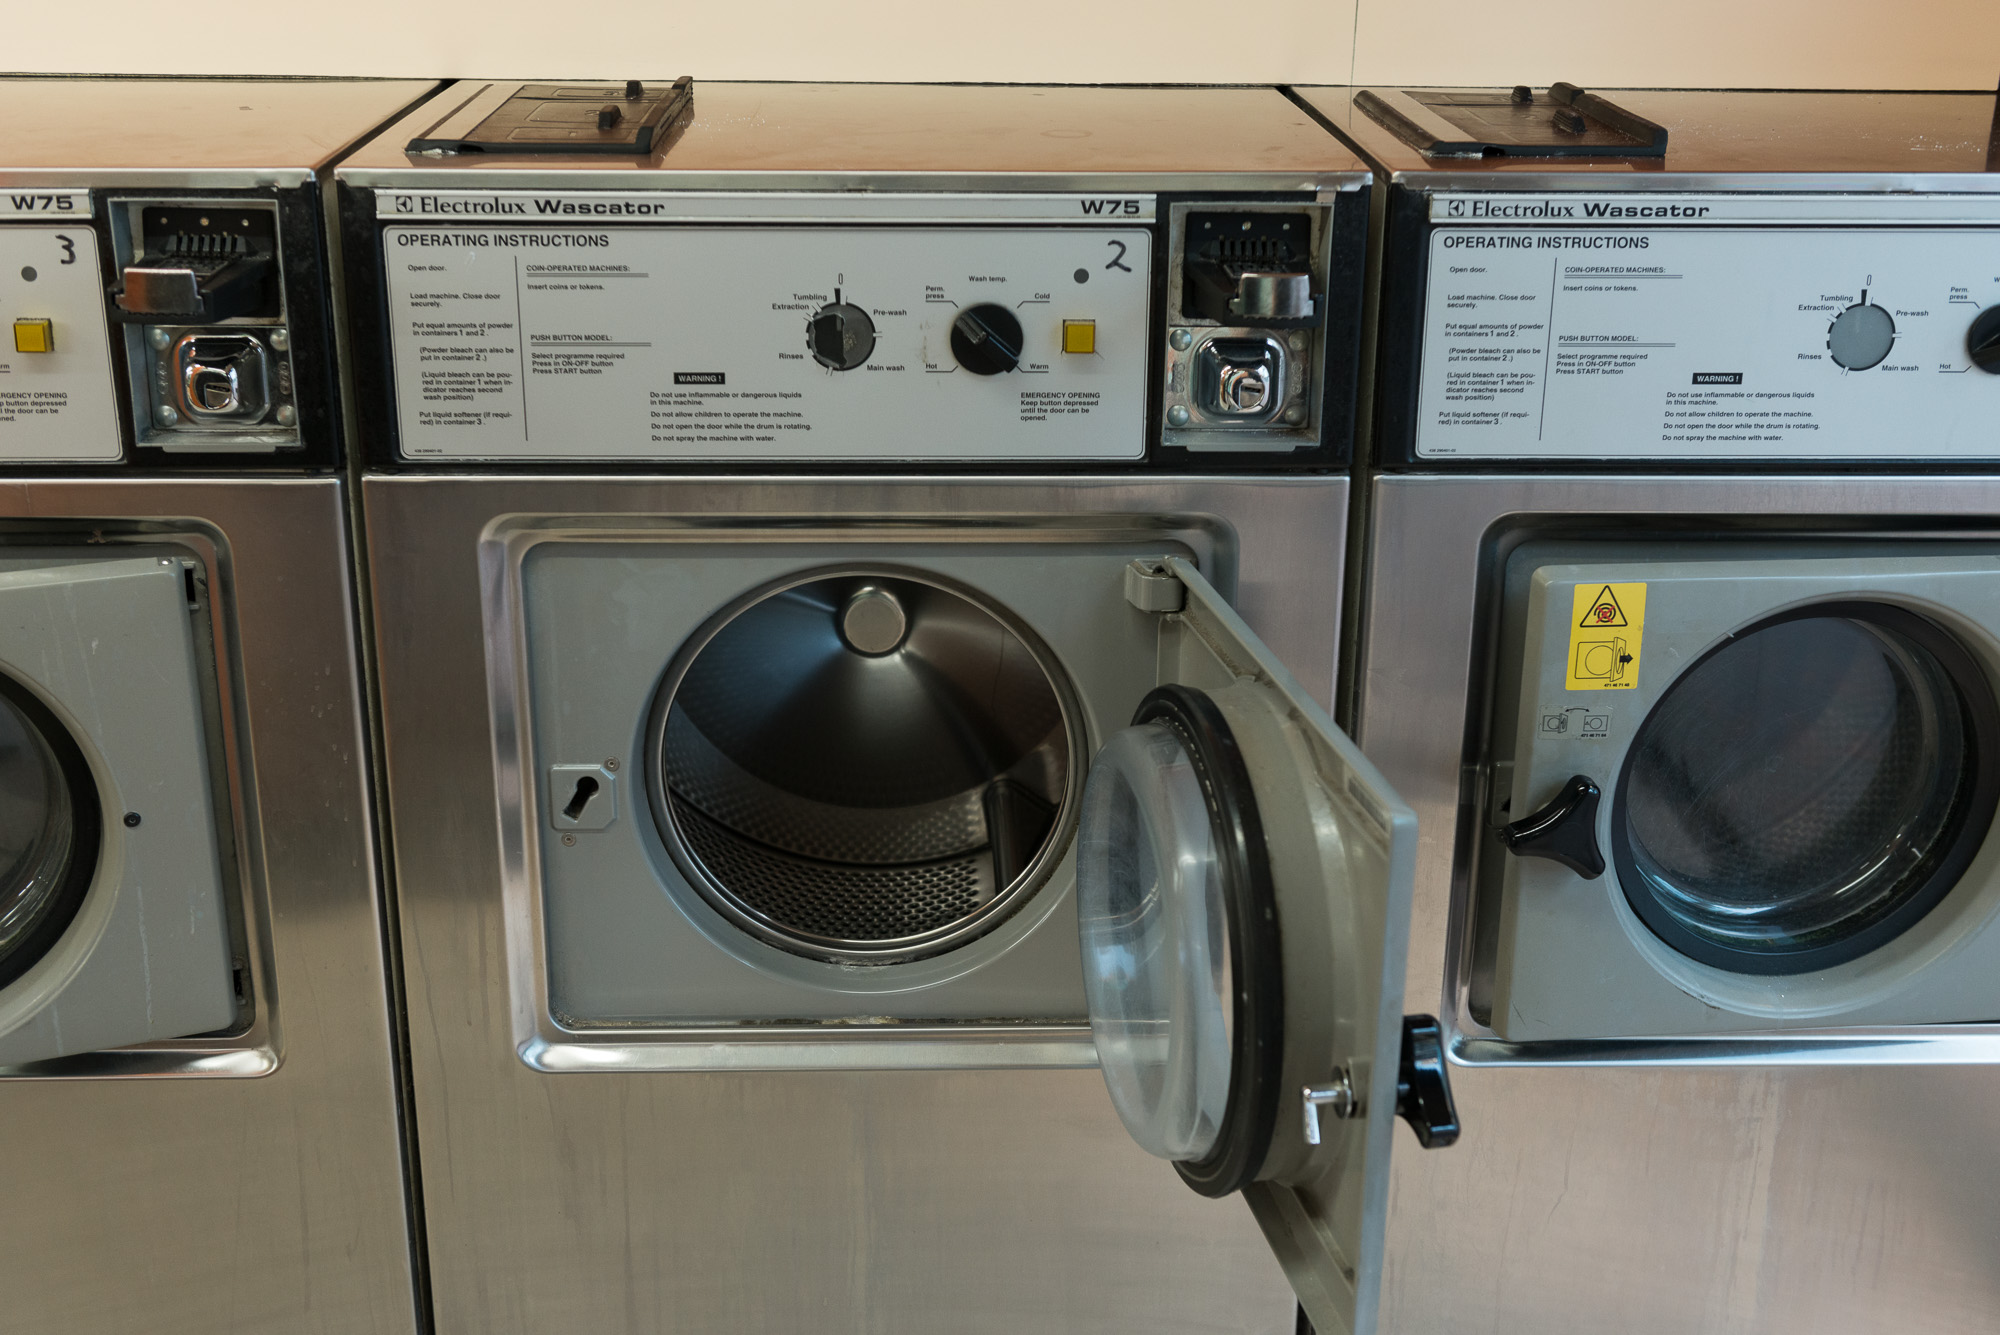 A photo of a several washing machines in a laundromat. The one immediately in front of the camera has its door open.